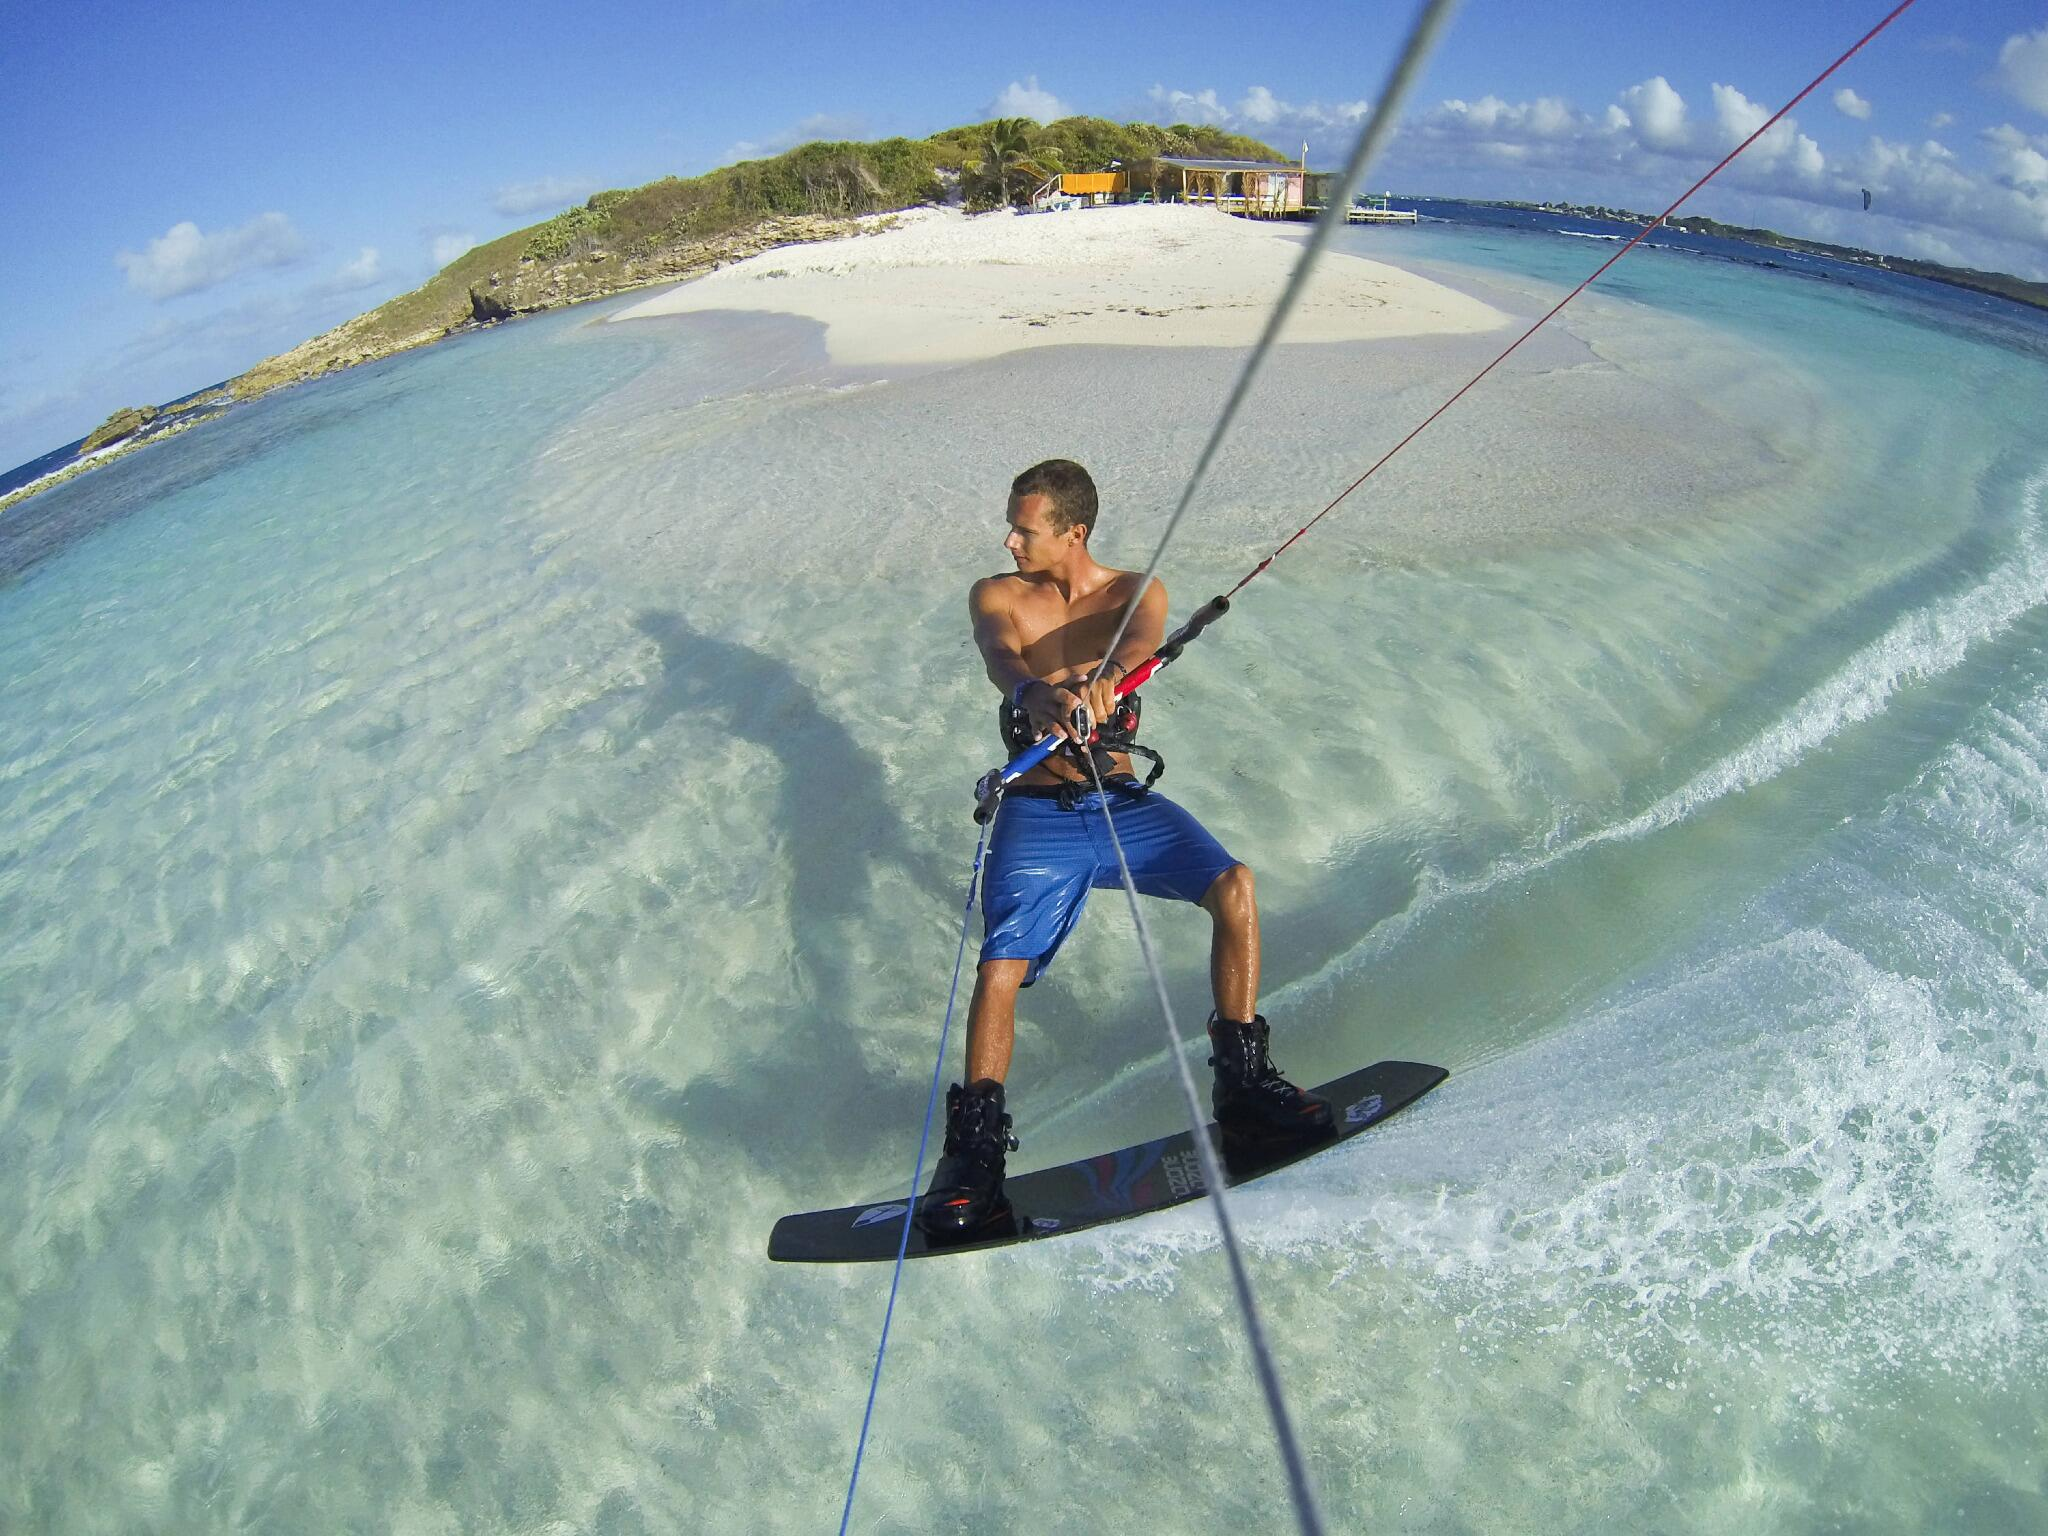 Photo of the Day! Island hopping in Antigua with @JakeKelsick. #GoPro #kiteboarding http://t.co/b59AcCeqs6